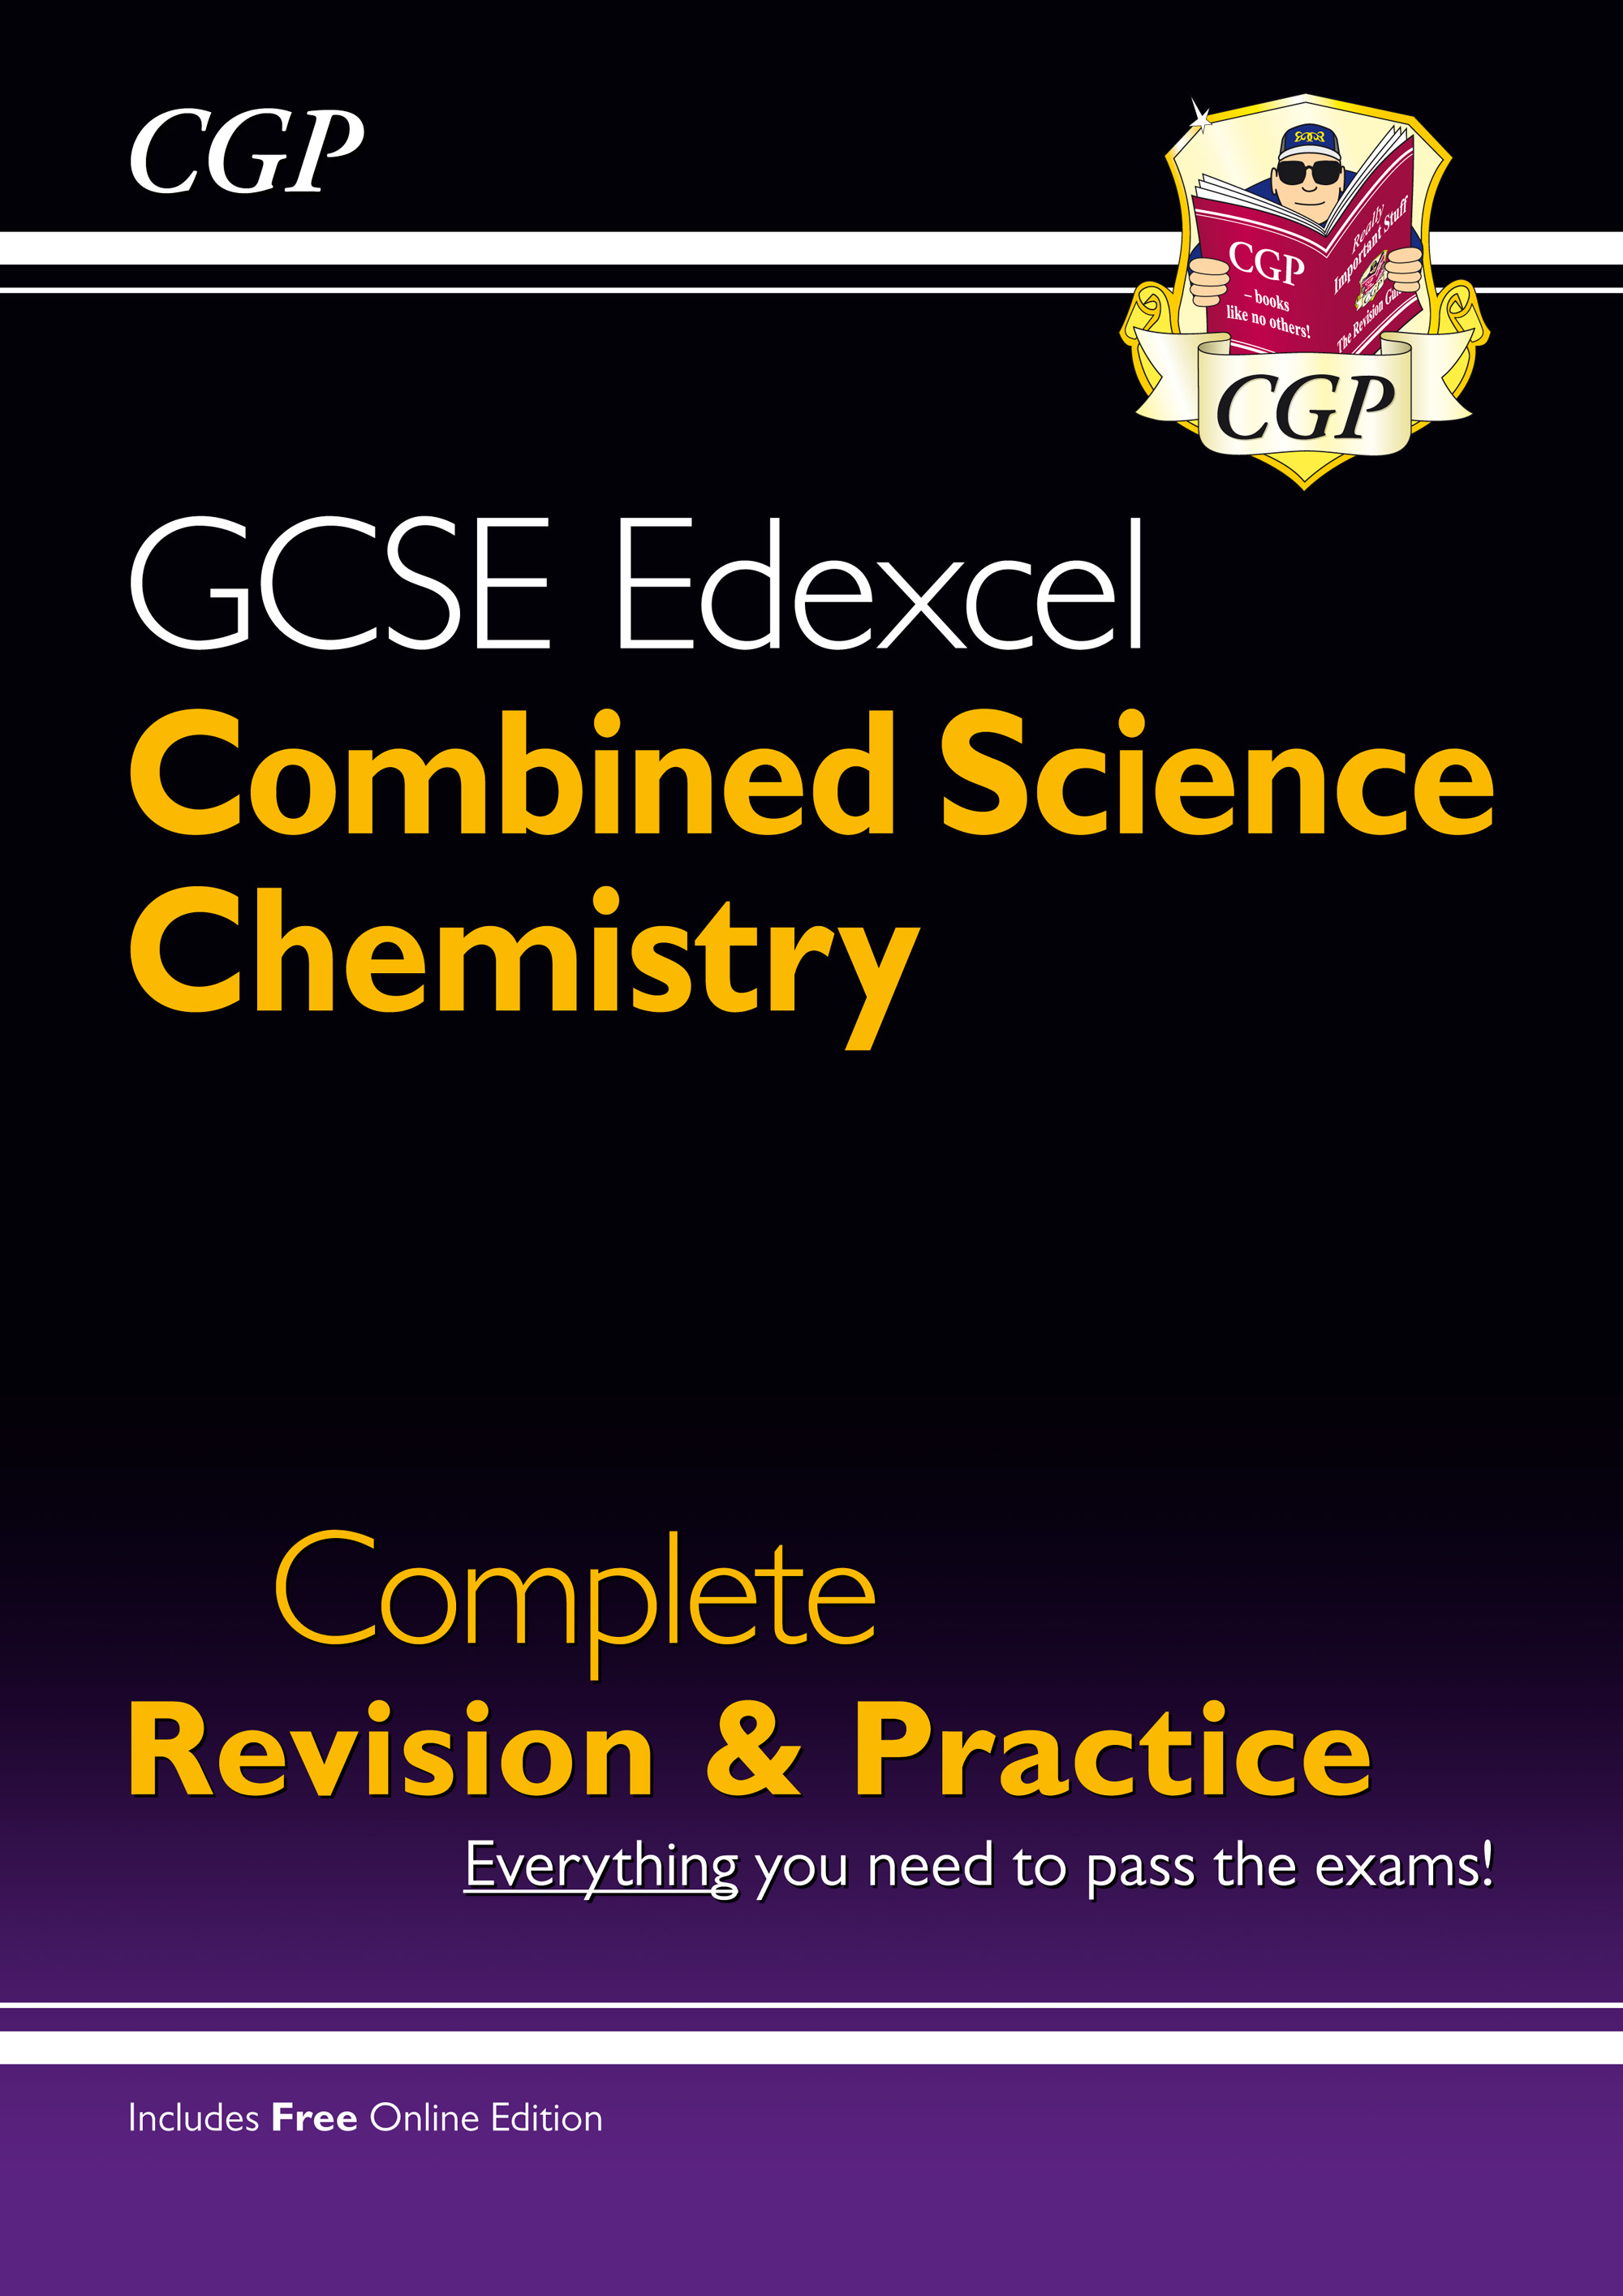 SCCES41 - Grade 9-1 GCSE Combined Science: Chemistry Edexcel Complete Revision & Practice with Onlin